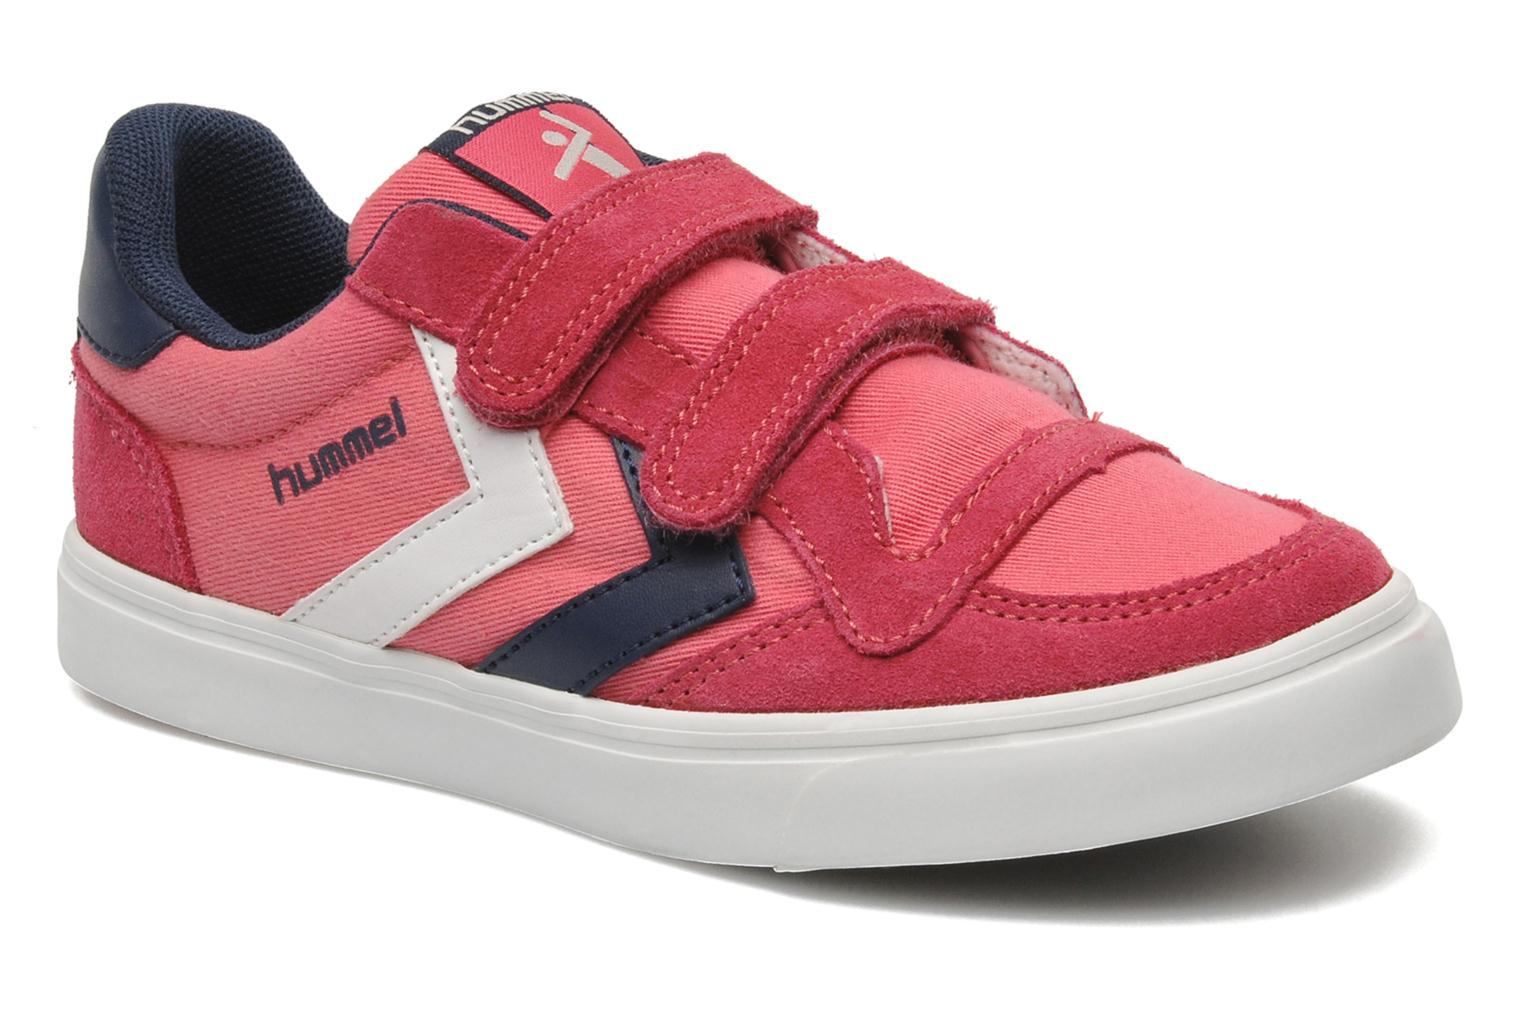 Baskets Hummel STADIL JR CANVAS LO Rose vue détail/paire